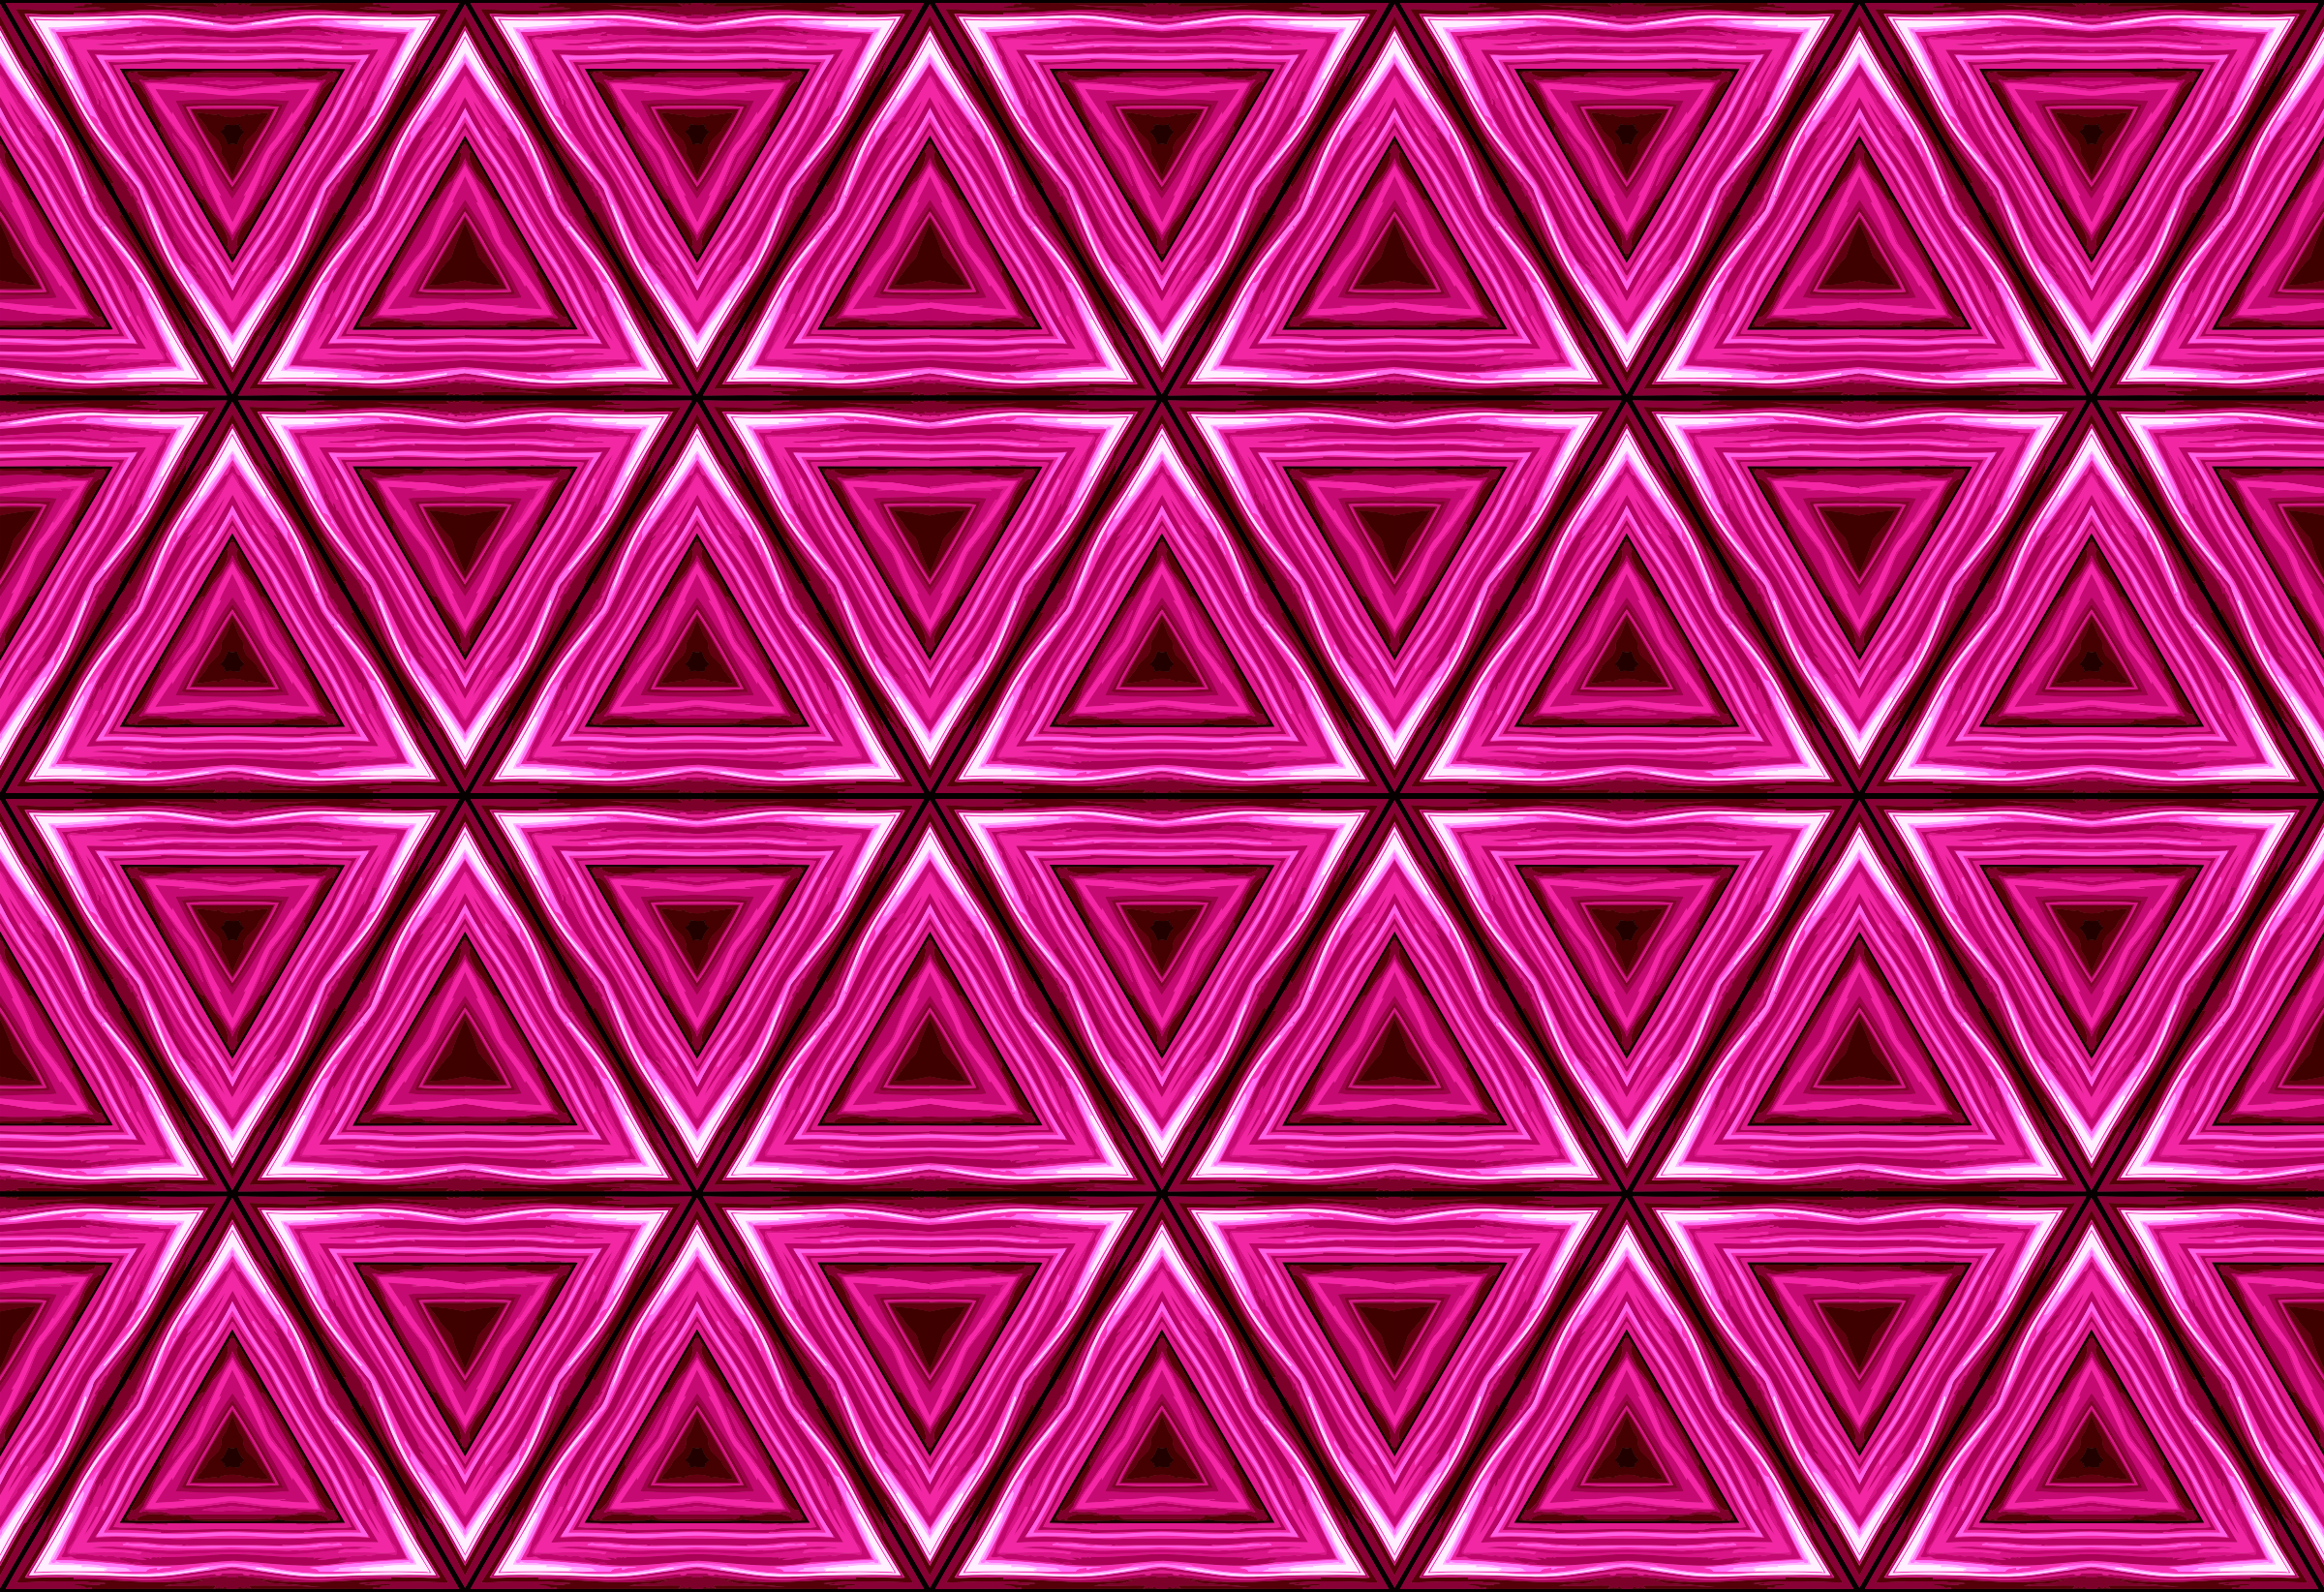 Background pattern 315 (colour 2) by Firkin